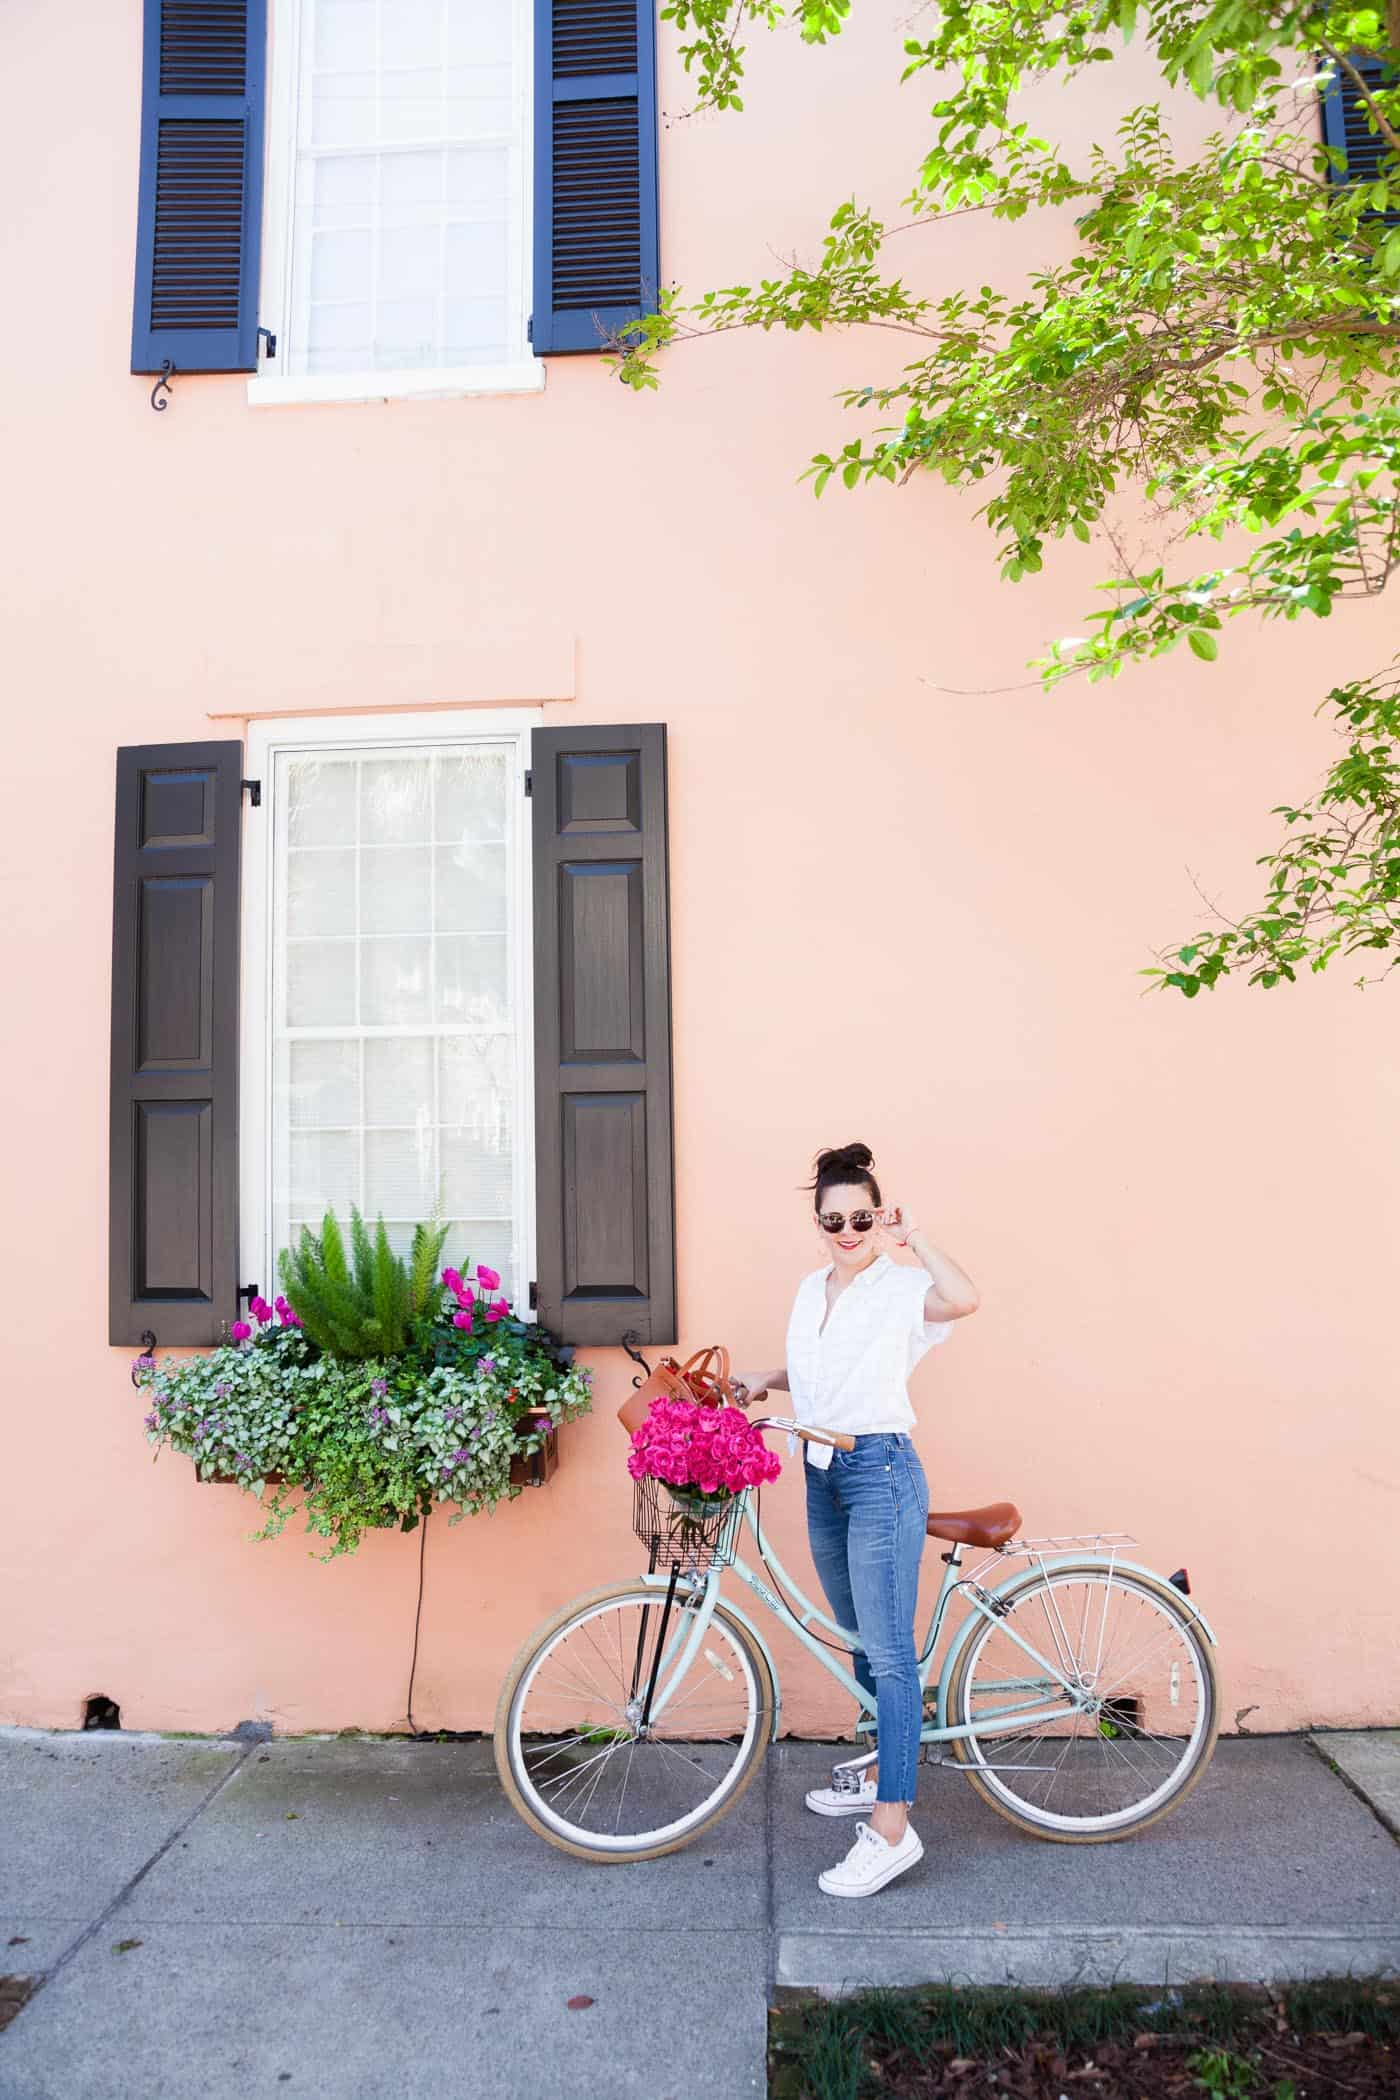 How to dress the right way for a day on a bike, bicycle with flowers in the basket, Charleston photos - My Style Vita @mystylevita